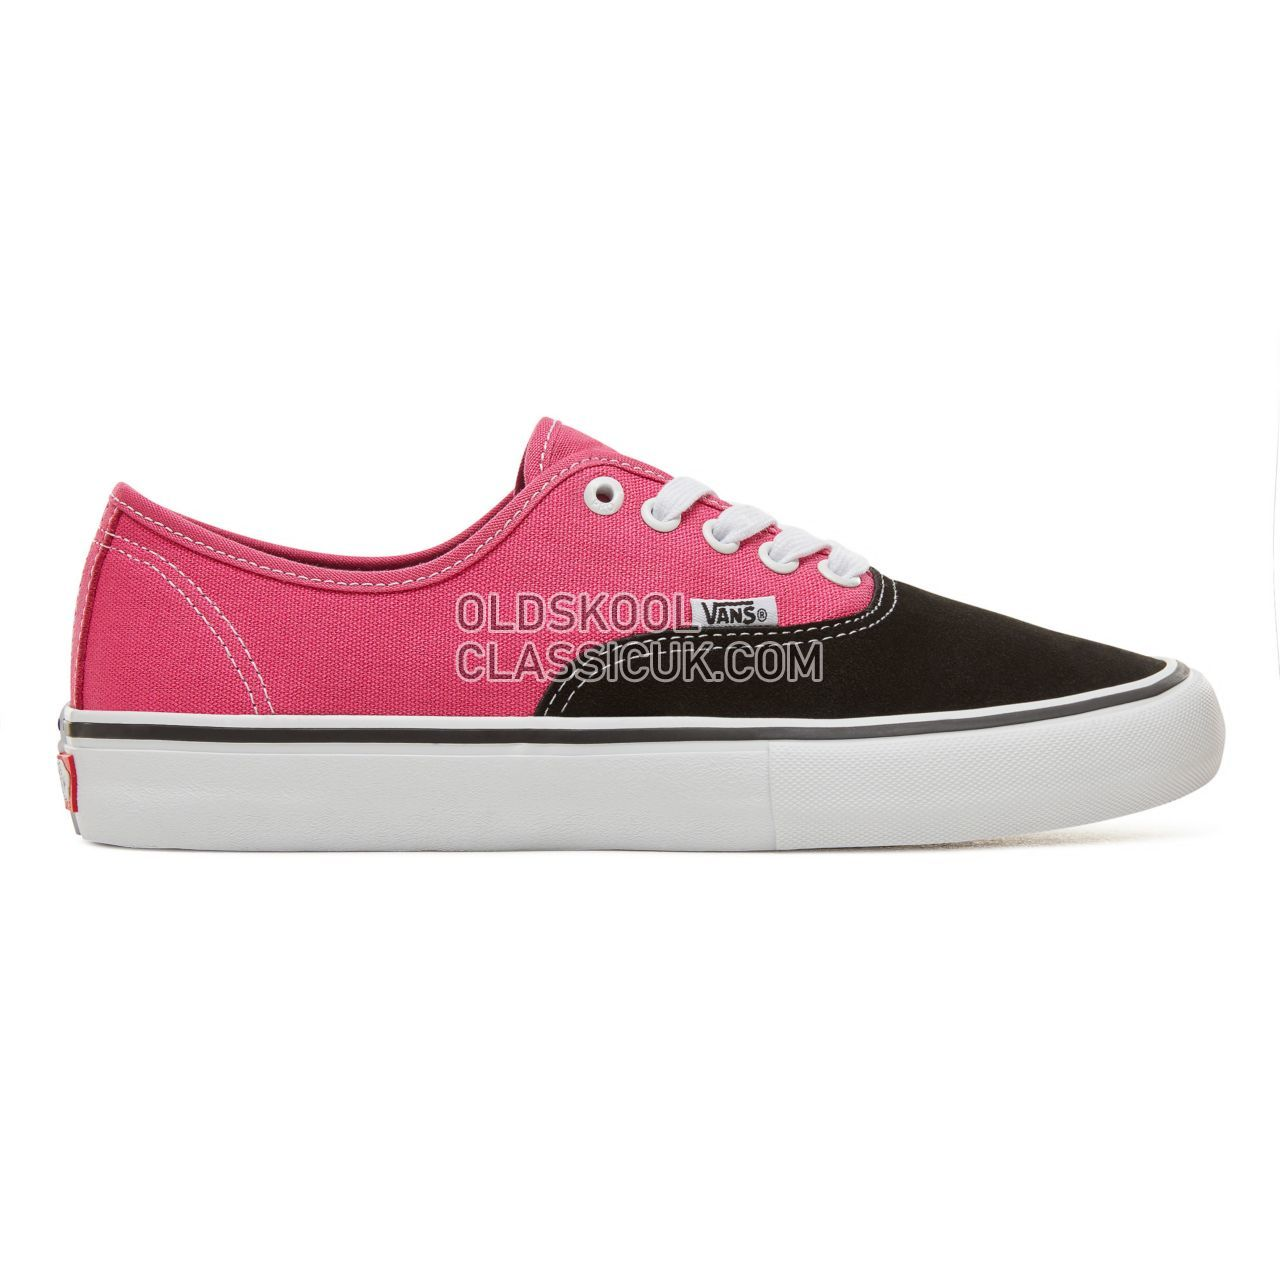 Vans Authentic Pro Sneakers Mens Black/Magenta V00Q0DKMN Shoes